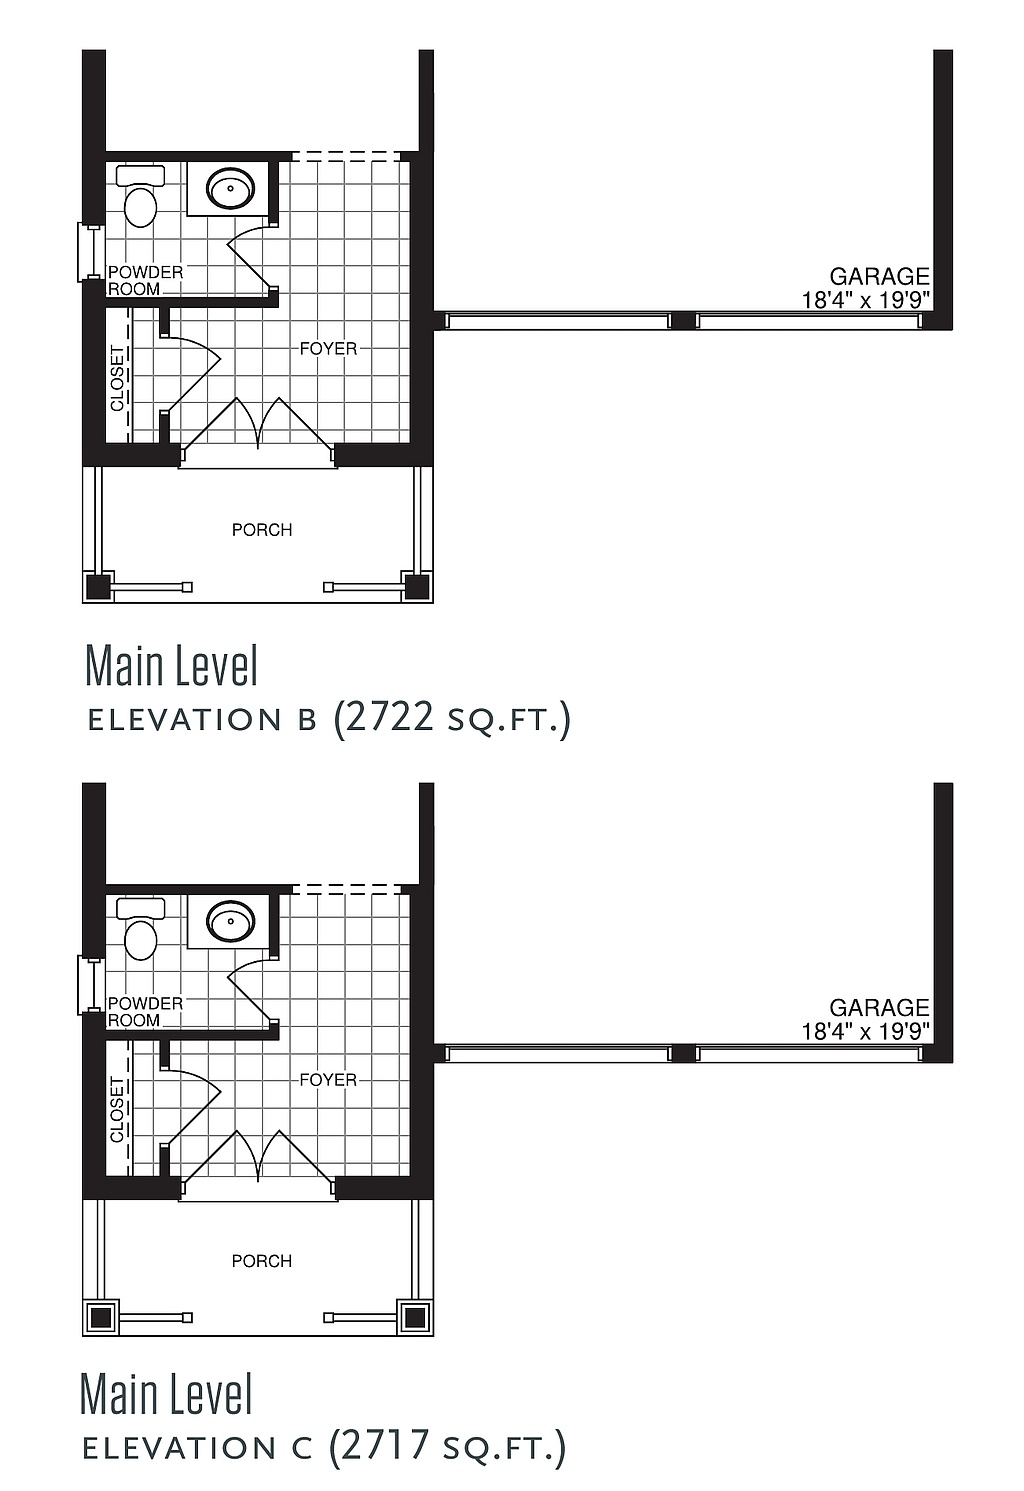 Oil Field Housing also Classic Marble Multipanel Wet Wall Panels 275 P besides Br ton 38ft Homes Walkout Basement Credit Valley additionally Br ton 38ft Homes Walkout Basement Credit Valley likewise Wellington Premier 4 Park Model Home. on tongue and groove exterior flooring